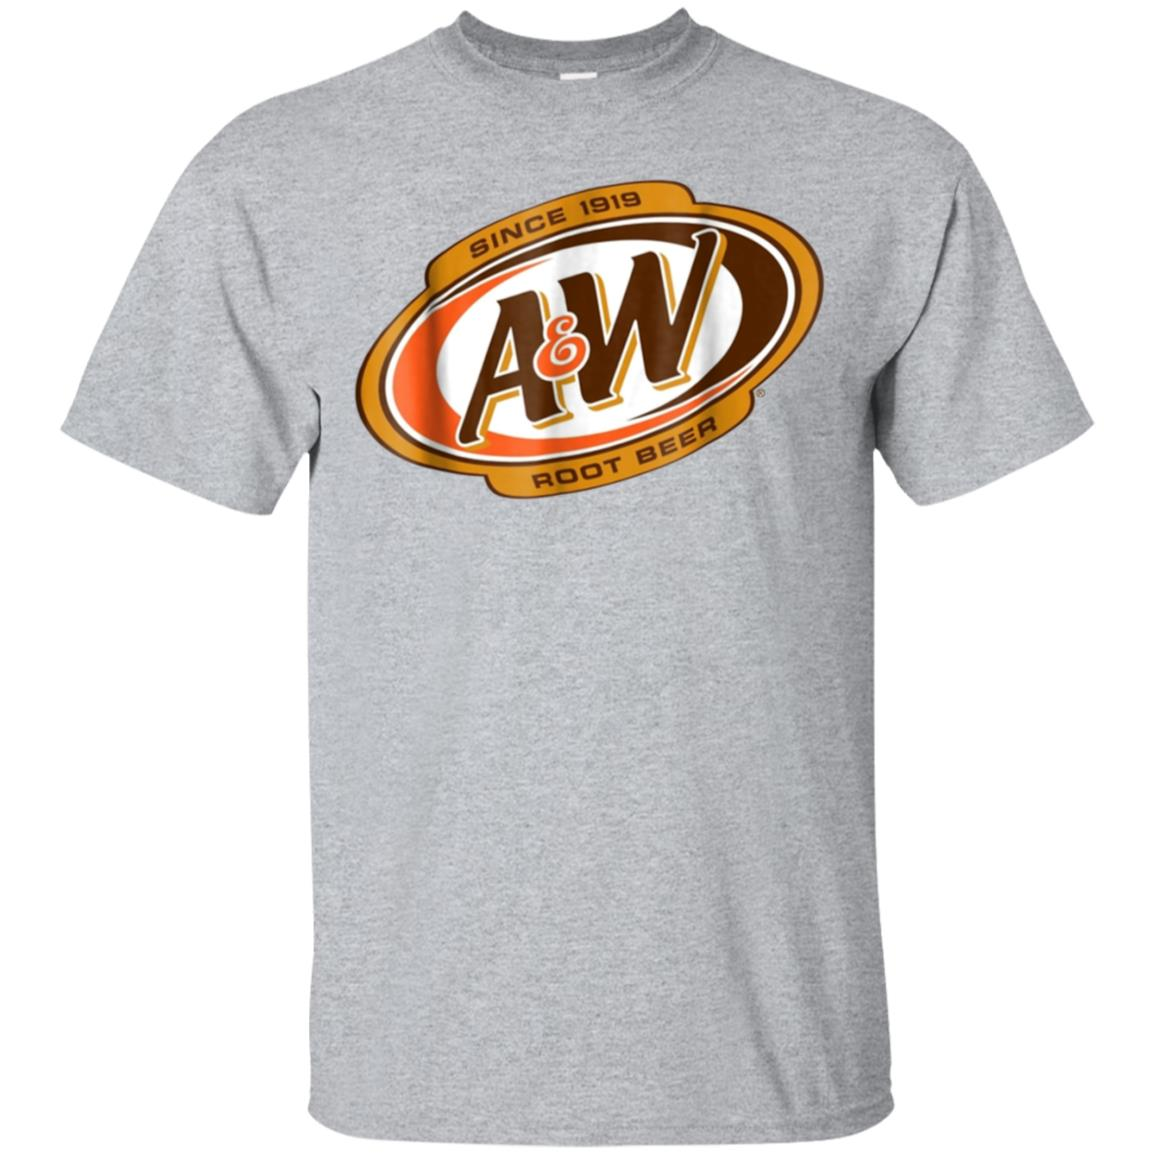 A&W Root Beer - Since 1918 T Shirt 99promocode